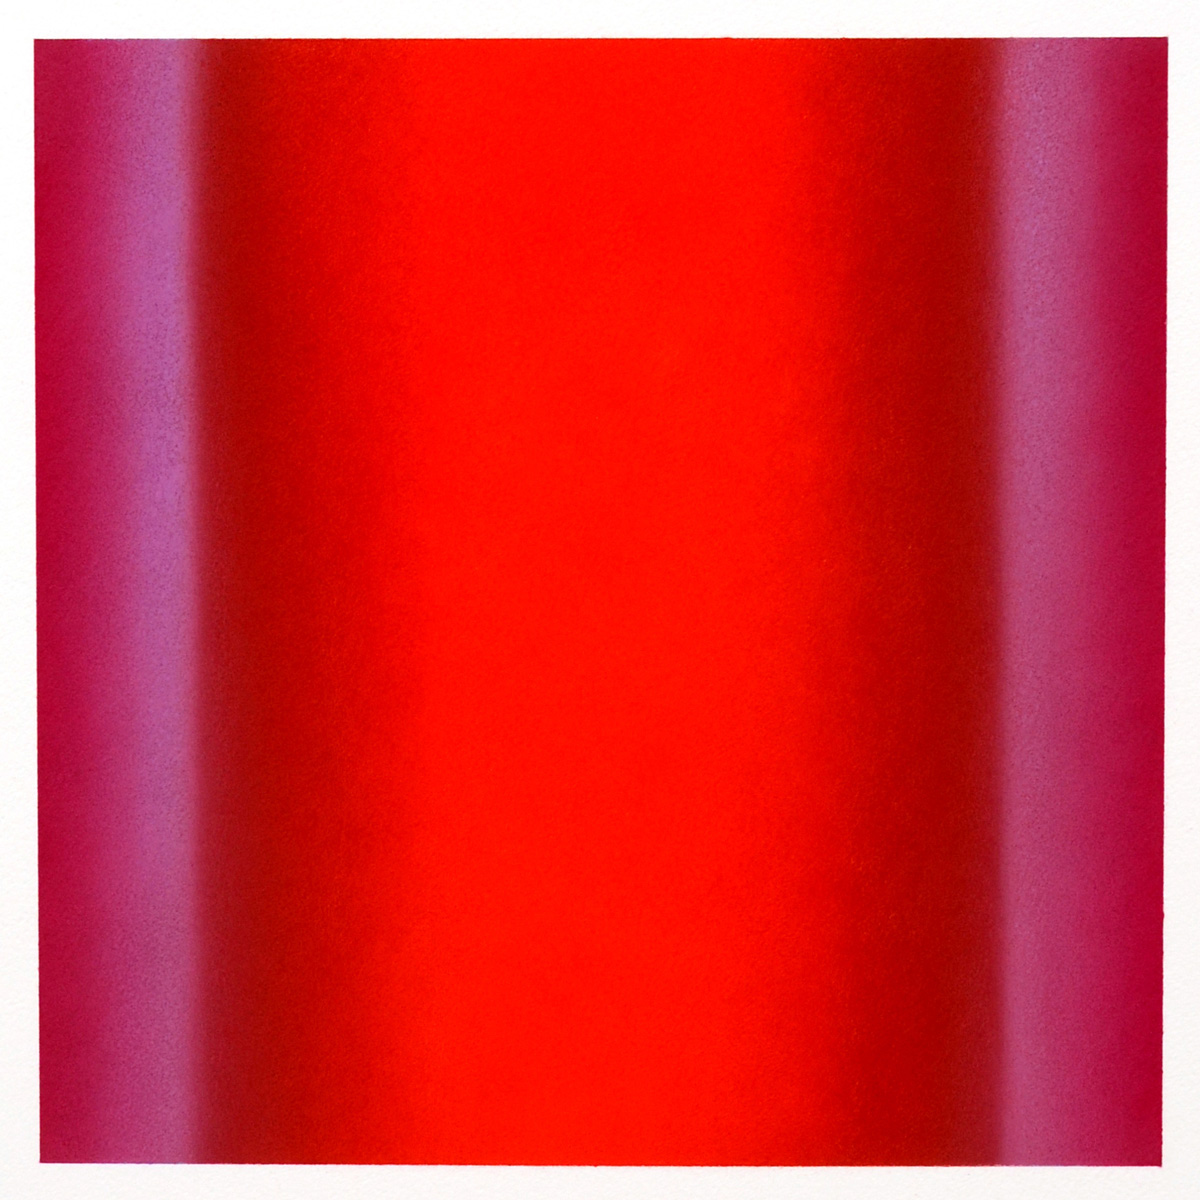 Warm-Light Red-Magenta-Violet, Interplay Series, 2012, pastel on paper, image: 14 x 14 in. (36 x 36 cm.), sheet: 30 x 22 in. (76 x 56 cm.)